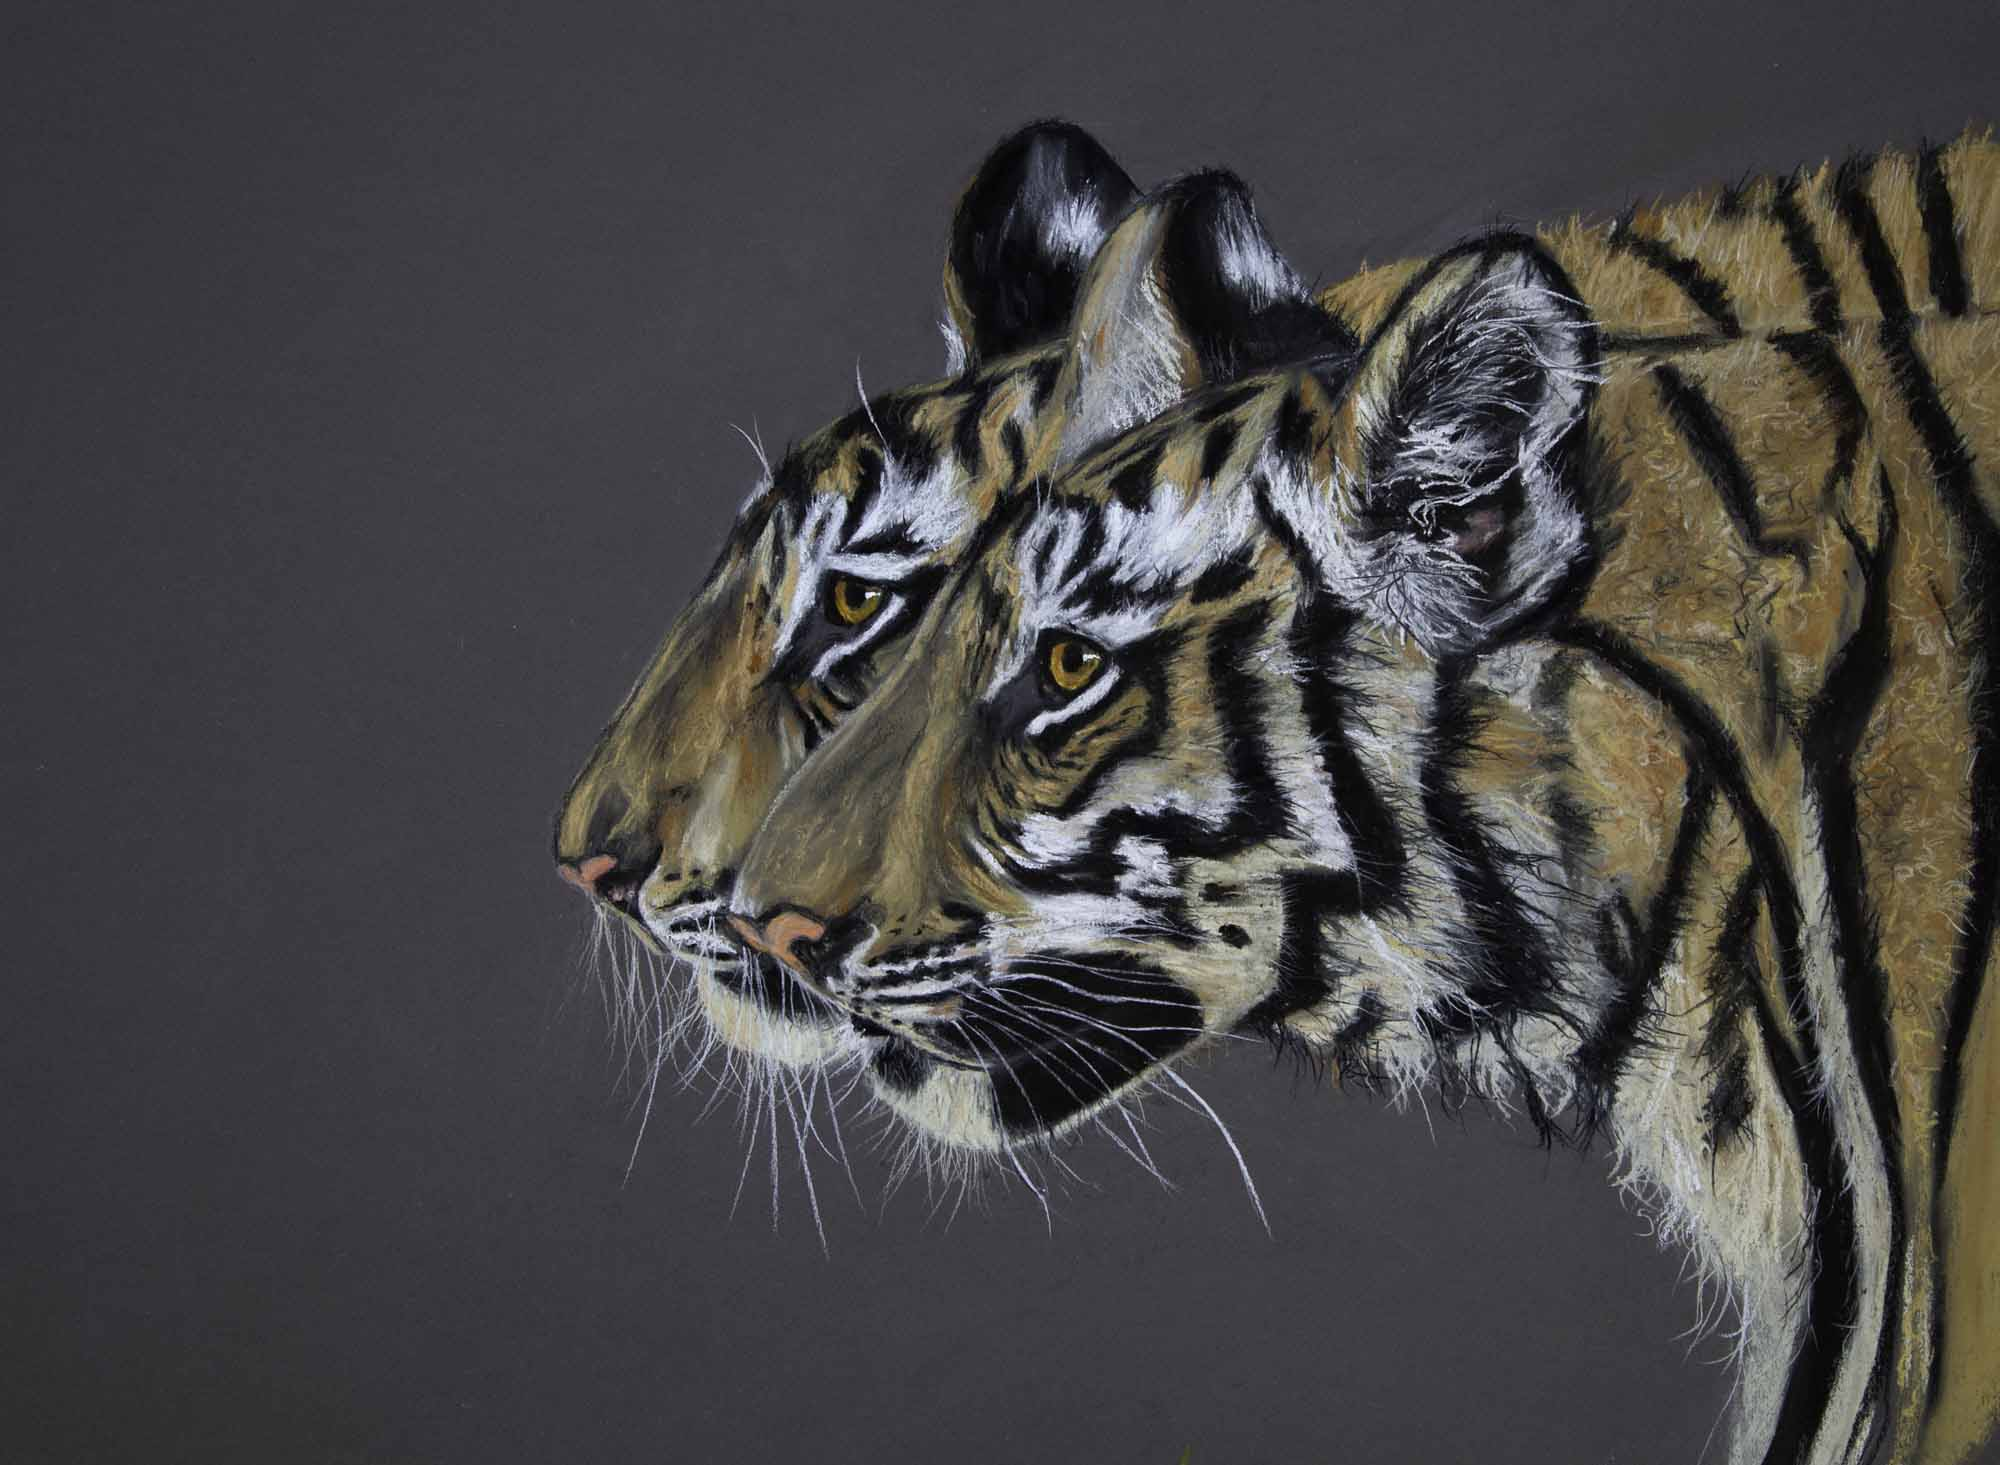 Indian wildlife walking side by side two tigers india pastel portrait endangered